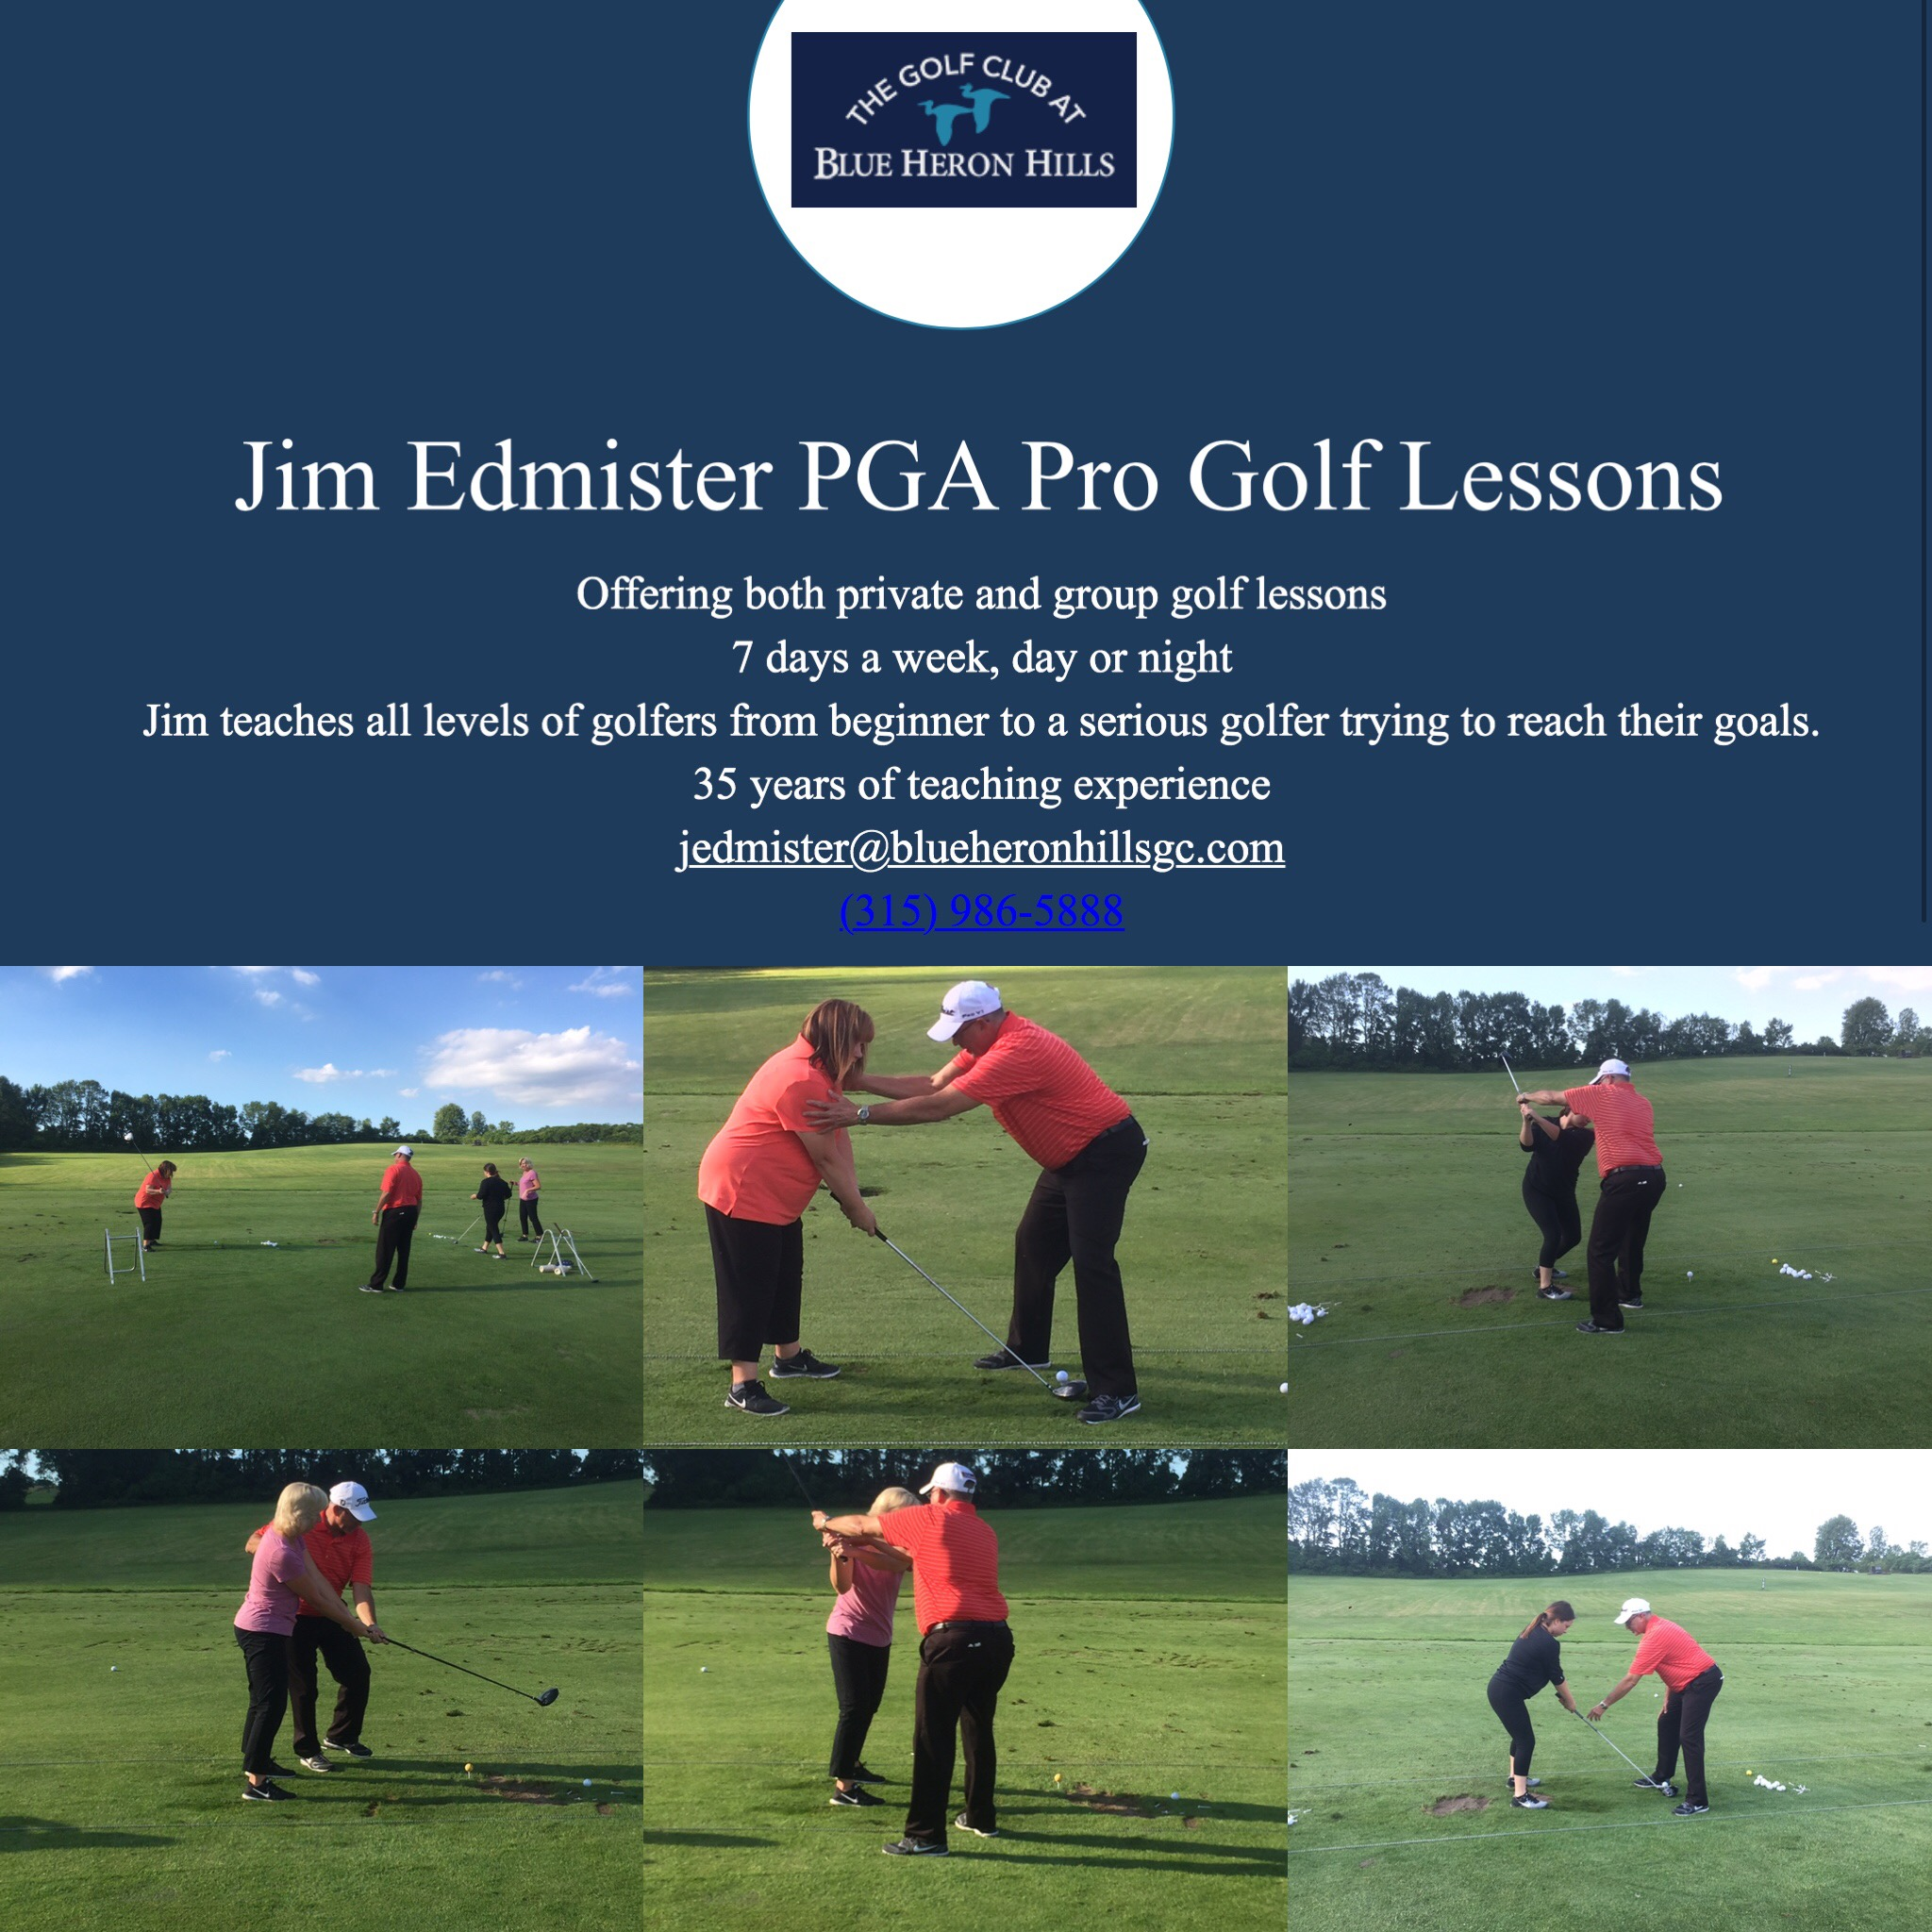 Jim Edmister Golf Lessons